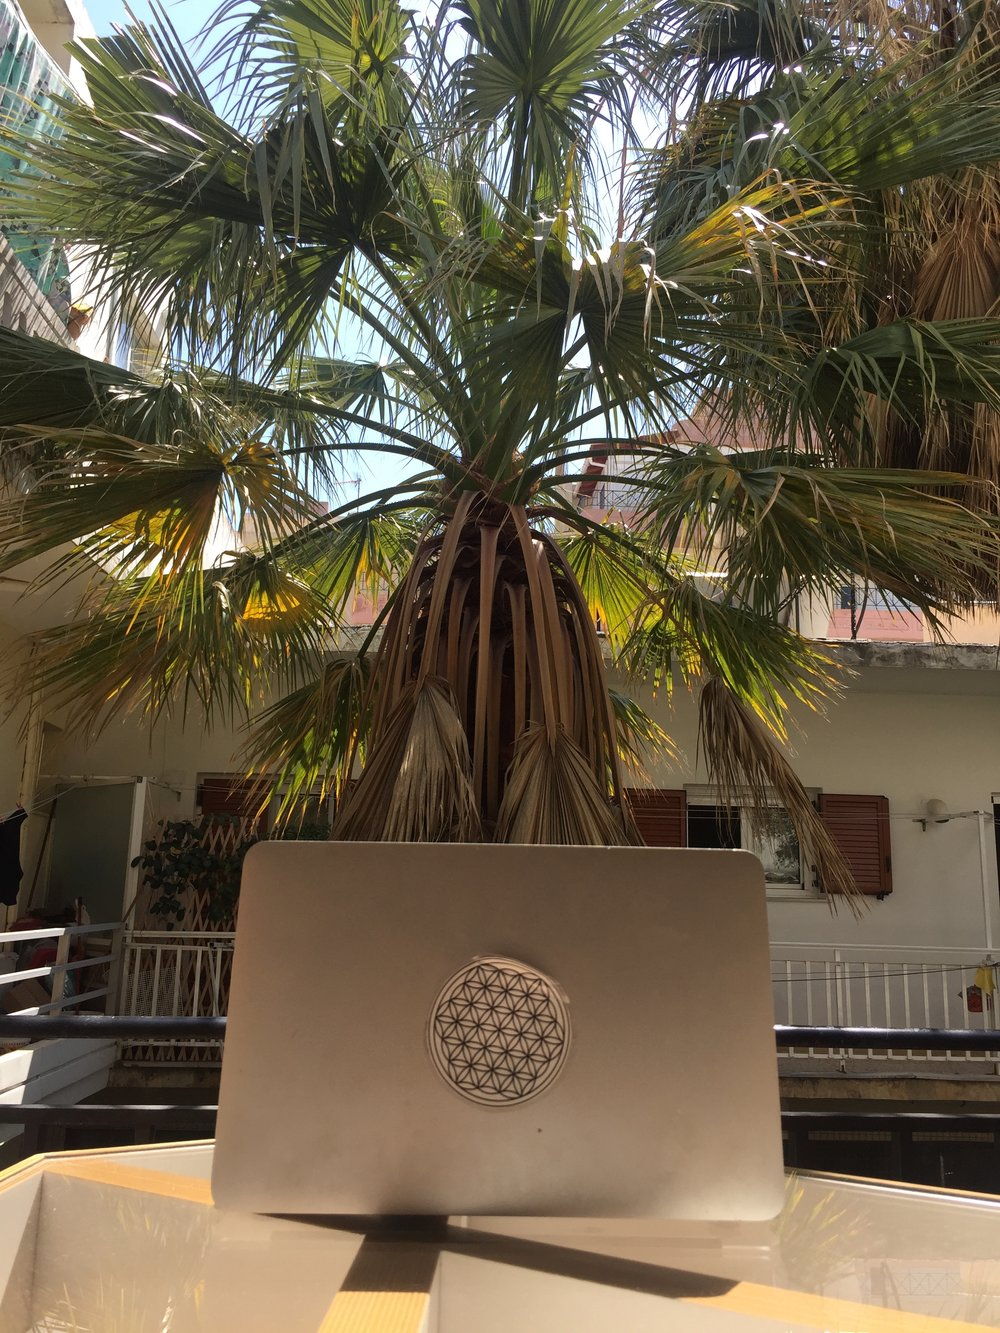 Working in the sunshine on my balcony, in Crete (Greece).